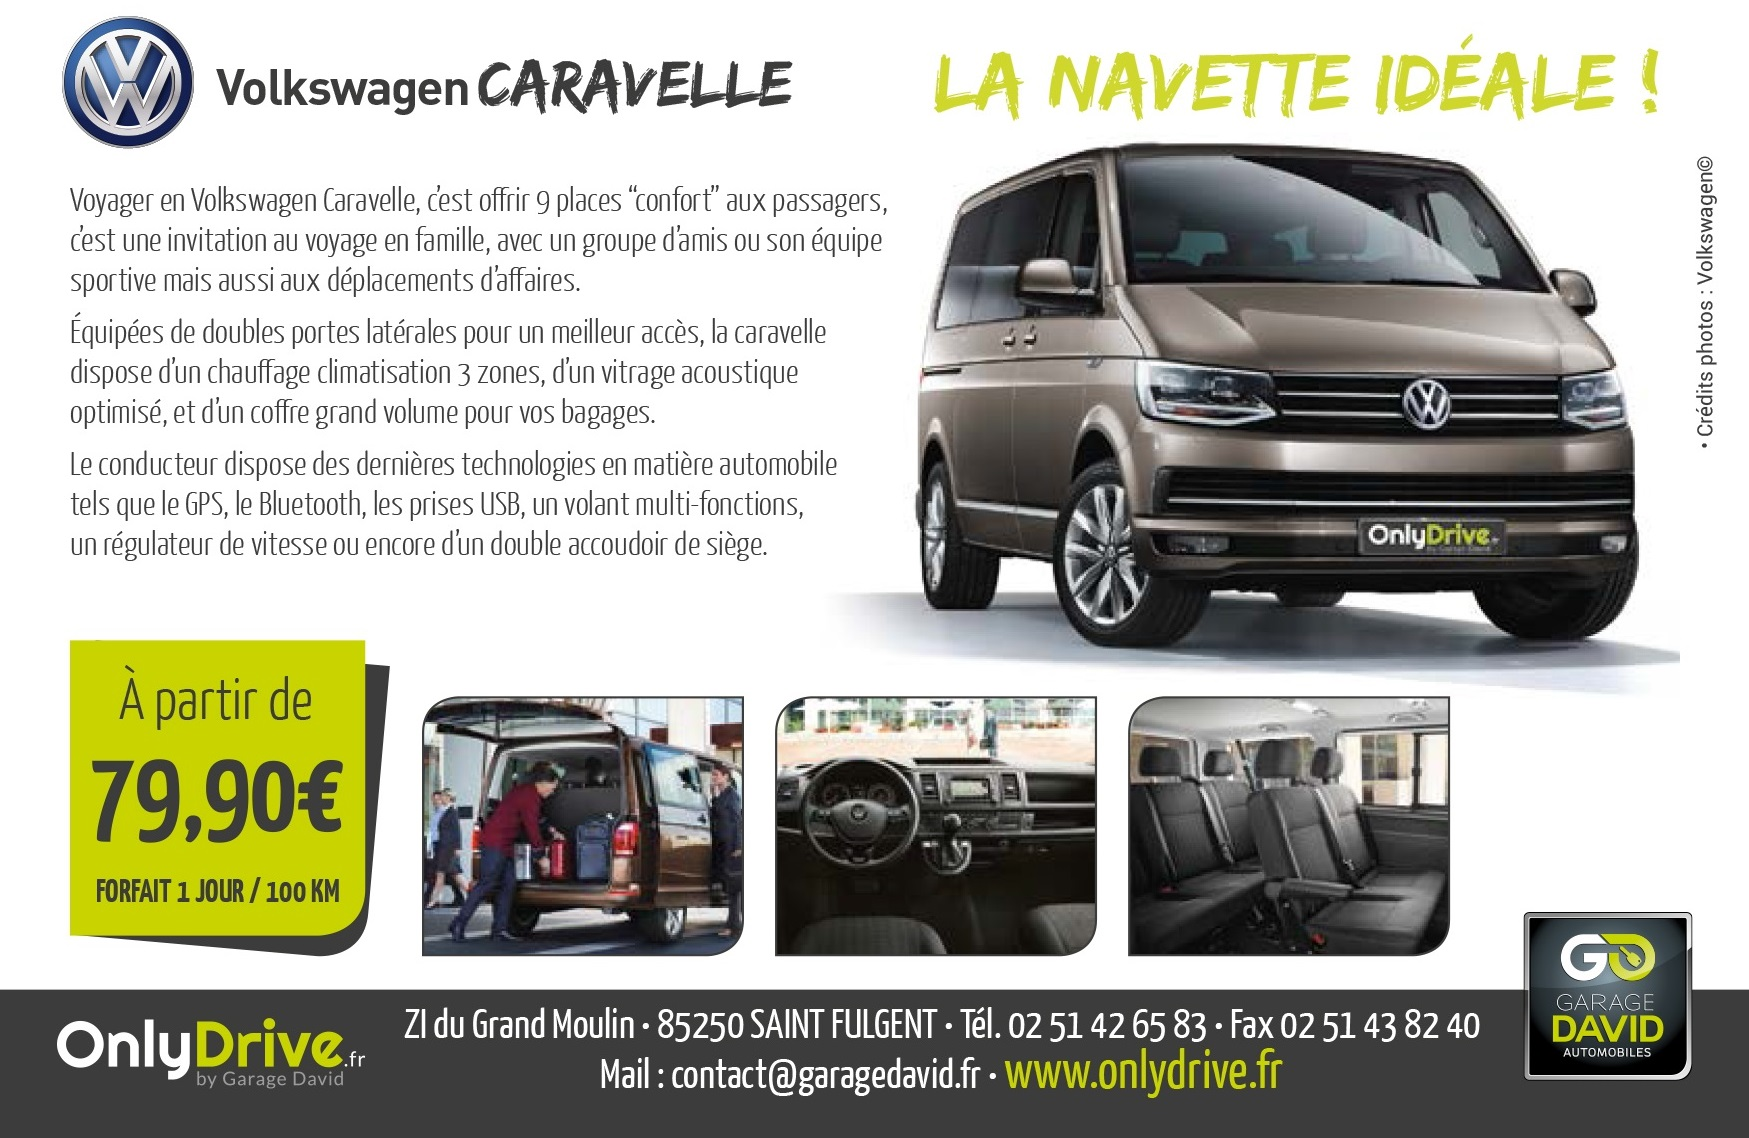 Location d'un Volkswagen Caravelle 9 places à Saint Fulgent Garage David Onlydrive.fr